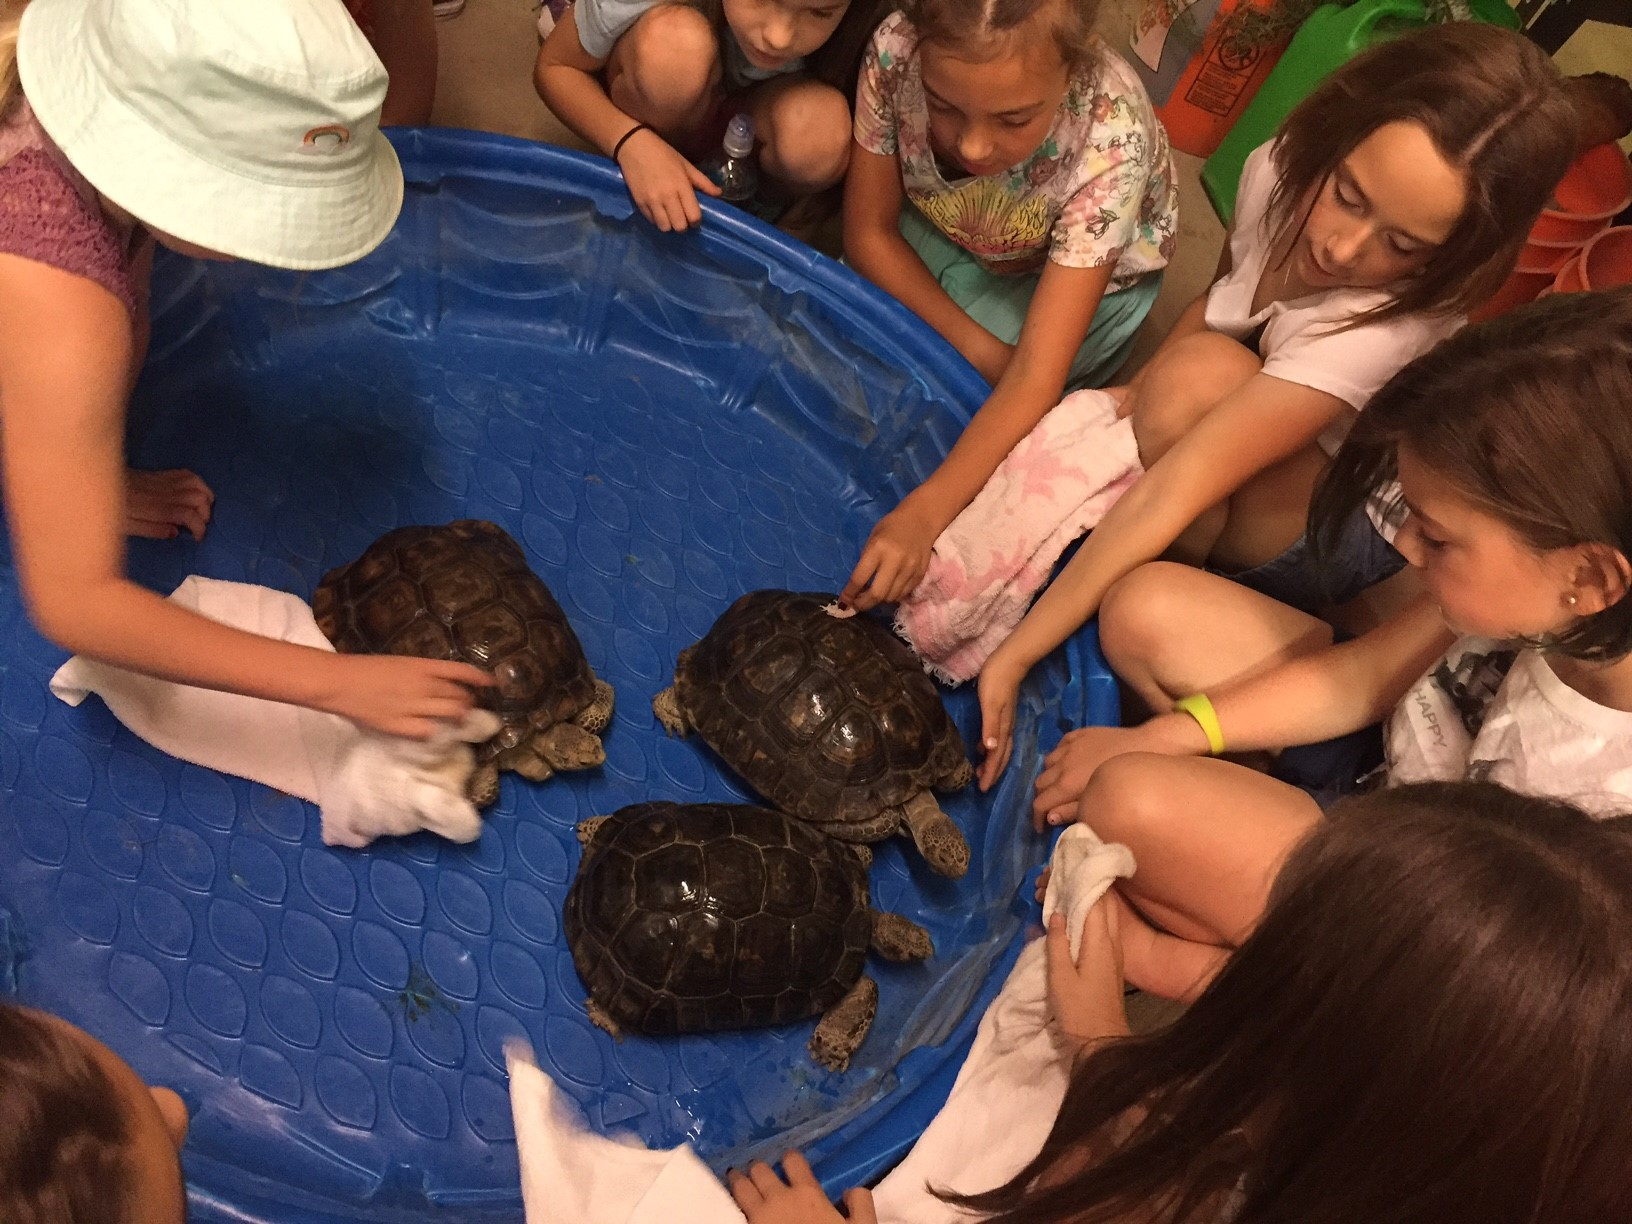 Blue plastic pool with three turtles inside. Children surround it petting them